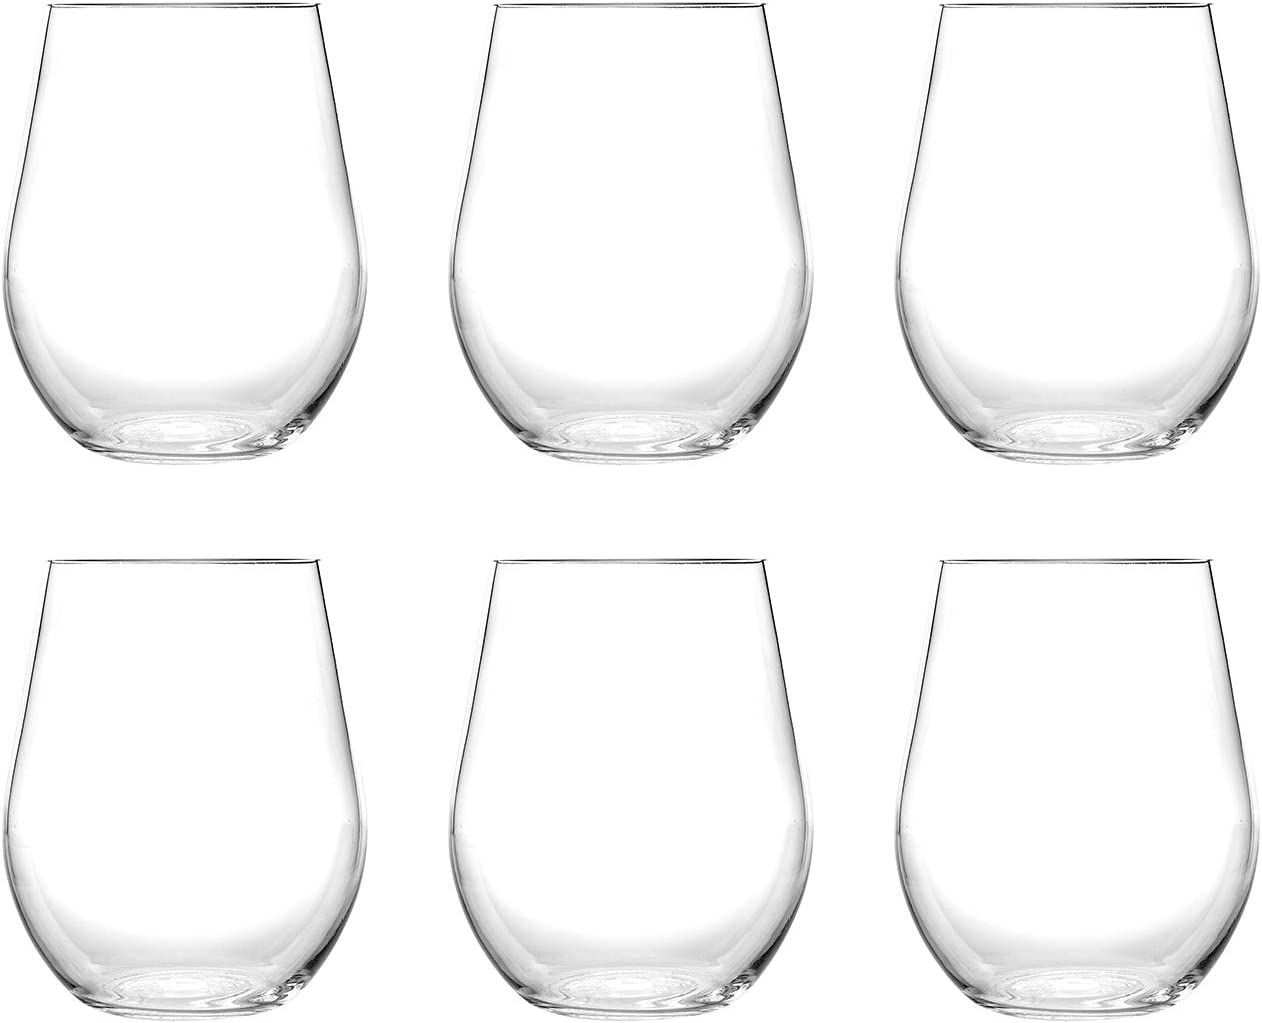 Classic 20OZ Acrylic Plastic Wine/Beverage Glasses, Sets 6(Clear) - Unbreakable, Dishwasher Safe, BPA Free (CLEAR, 6)